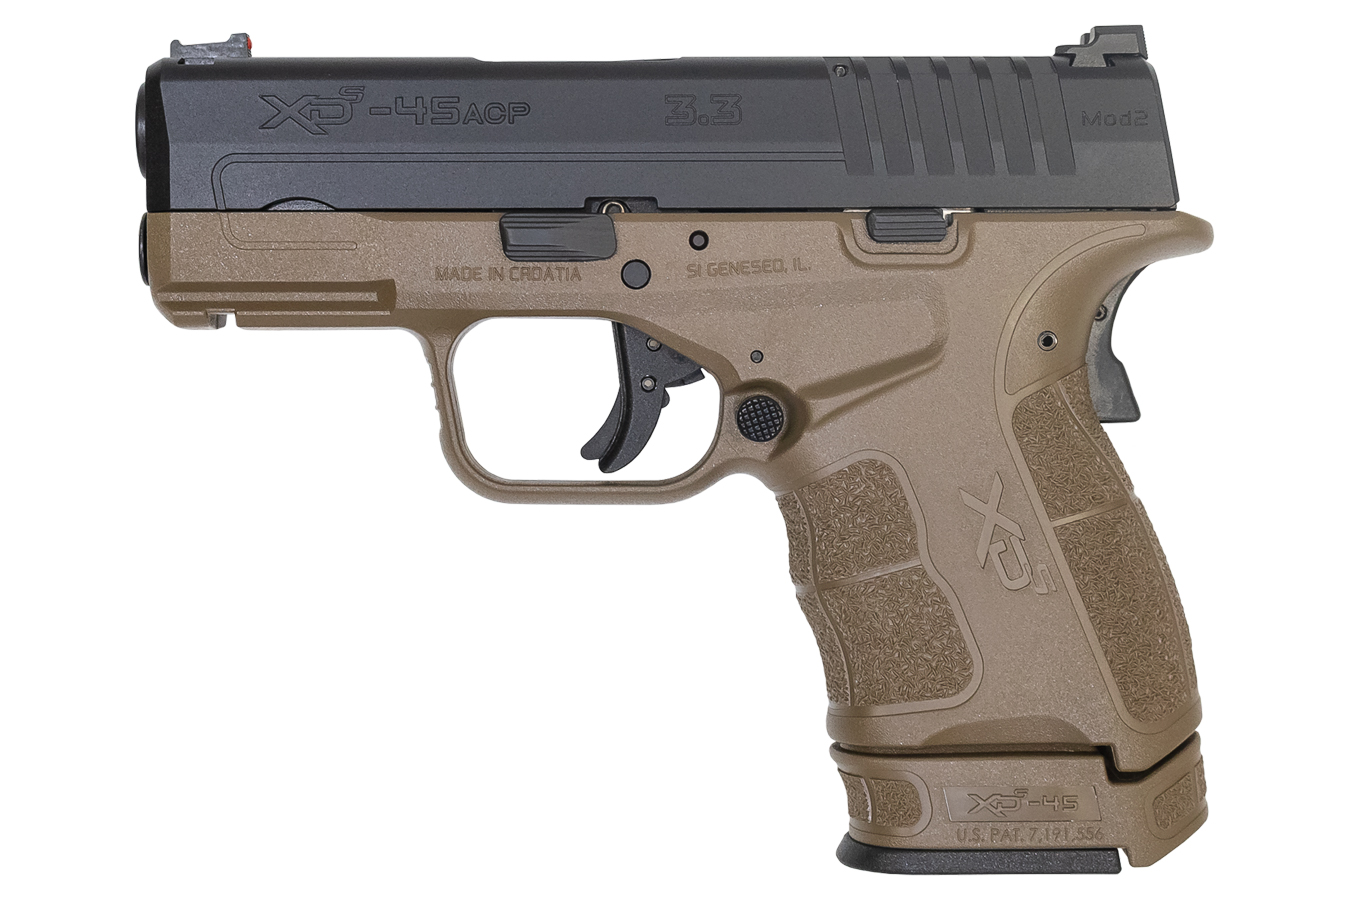 No. 19 Best Selling: SPRINGFIELD XDS MOD 2 45 ACP 3.3 IN BARREL FDE FRAME BLACK SLIDE FIBER OPTIC FRONT SIGHT